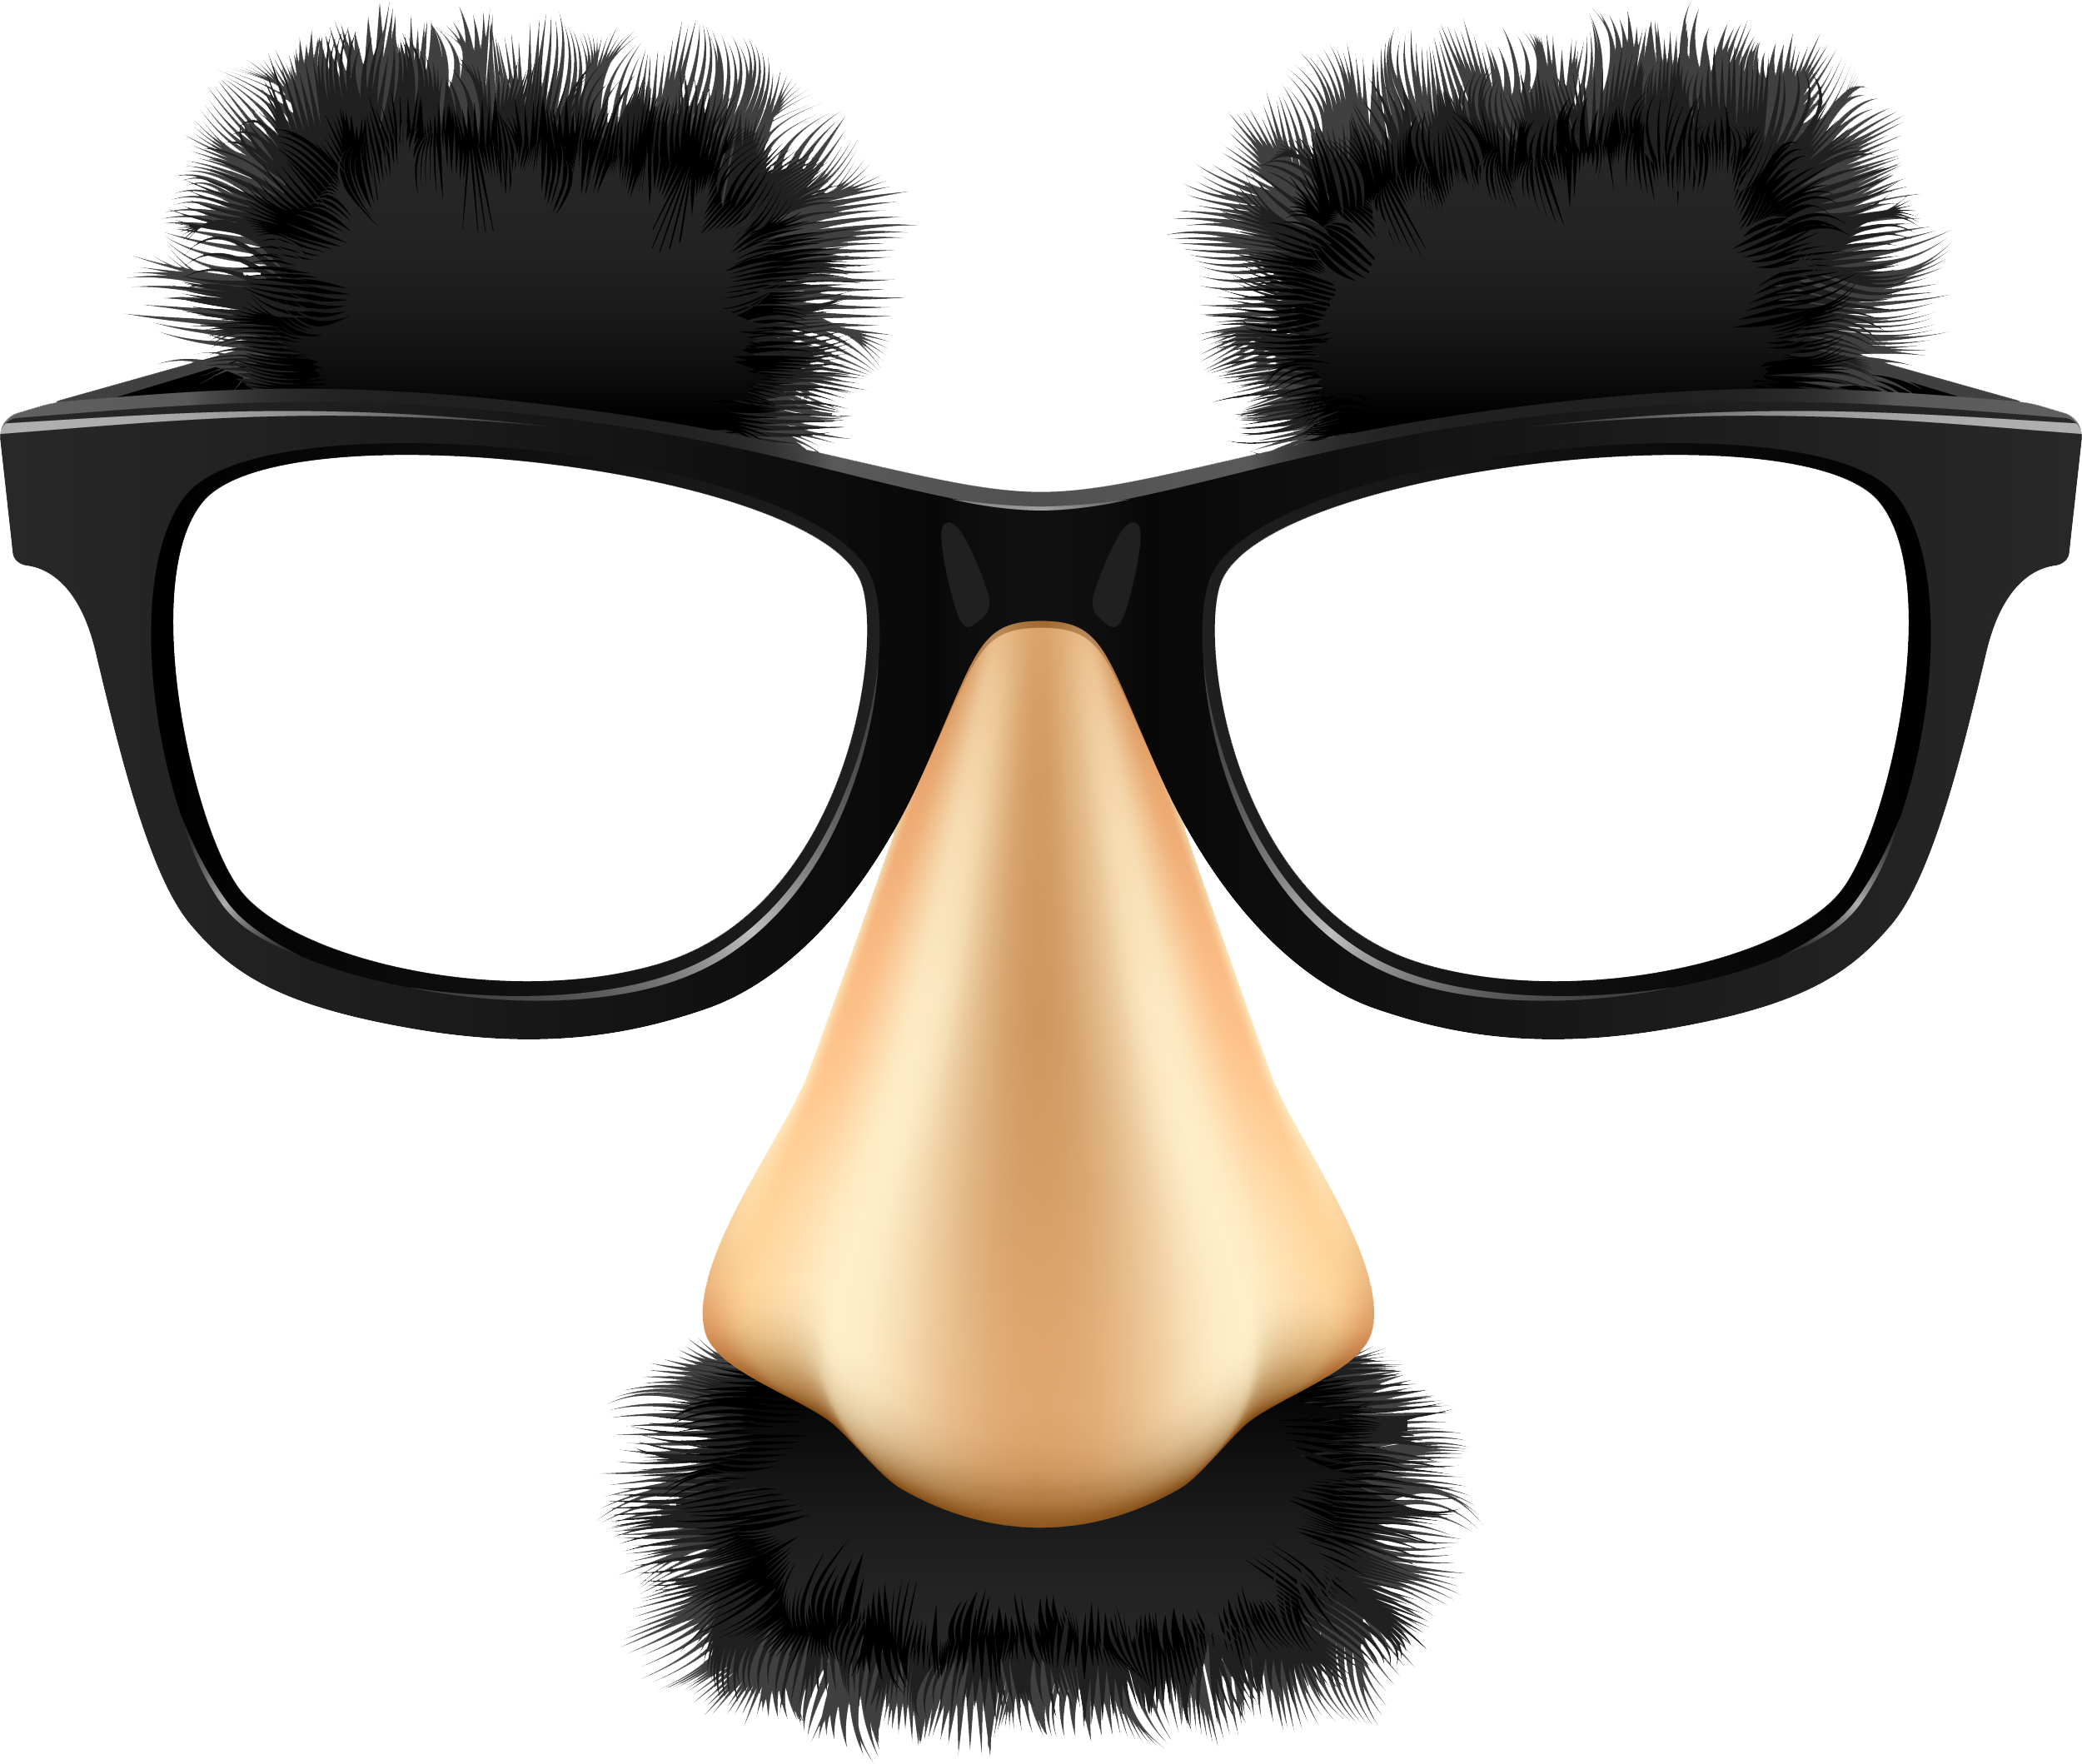 Groucho marx glasses png. Stock photography disguise download